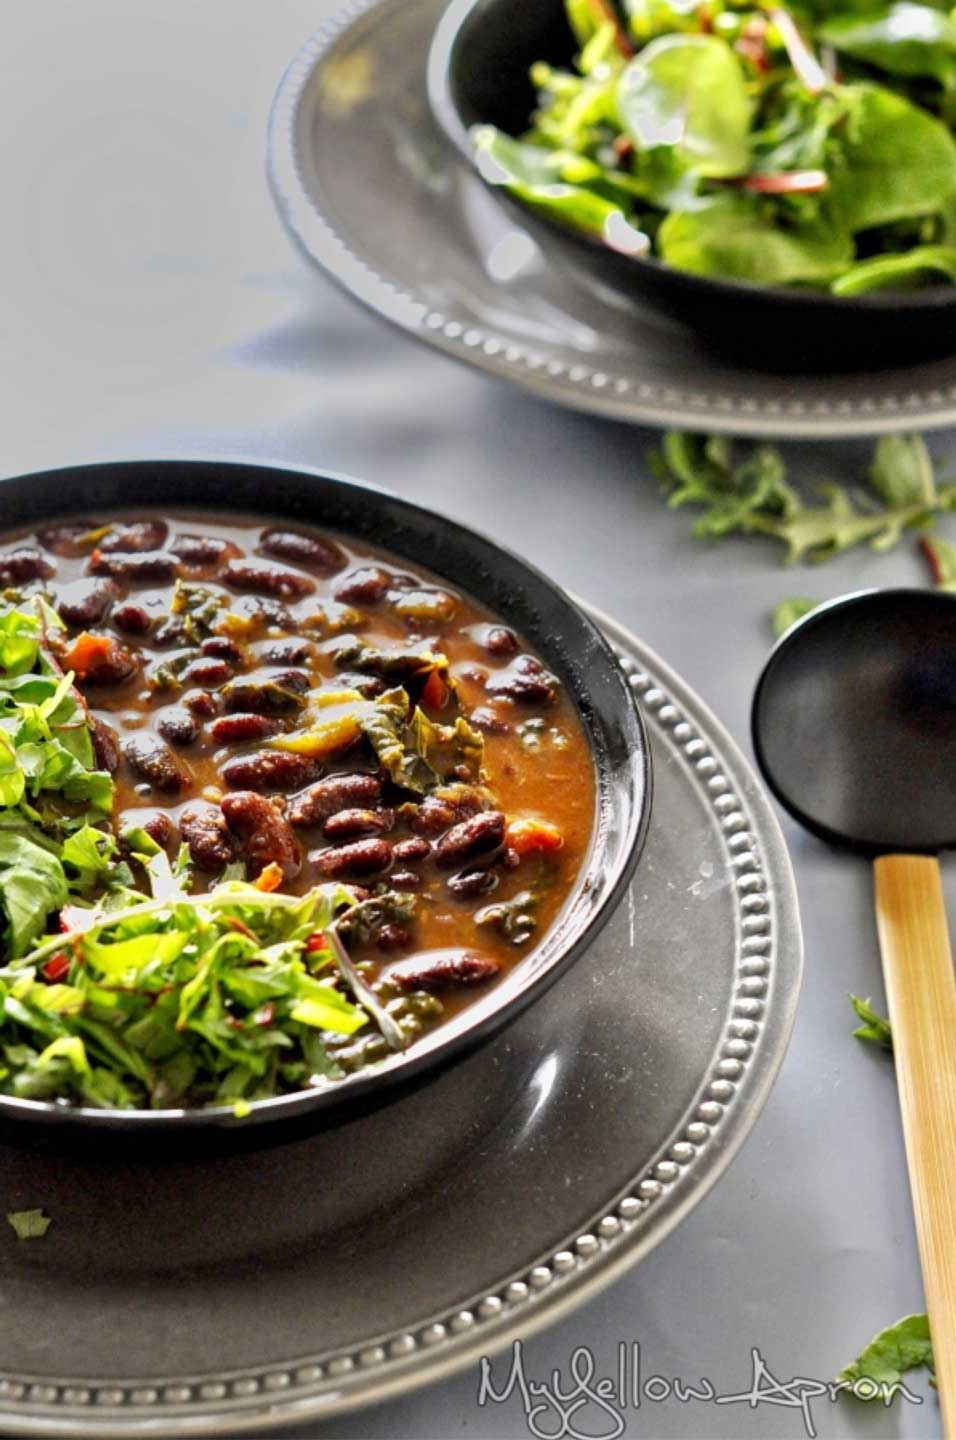 Chili with Spinach?!? Why not?? Try this Vegetarian Chili with Spinach (Palak Rajma) from Aish at My Yellow Apron … and then check out our whole list of scrumptious chili recipes, specifically designed as electric pressure cooker recipes so they're all easy and FAST!